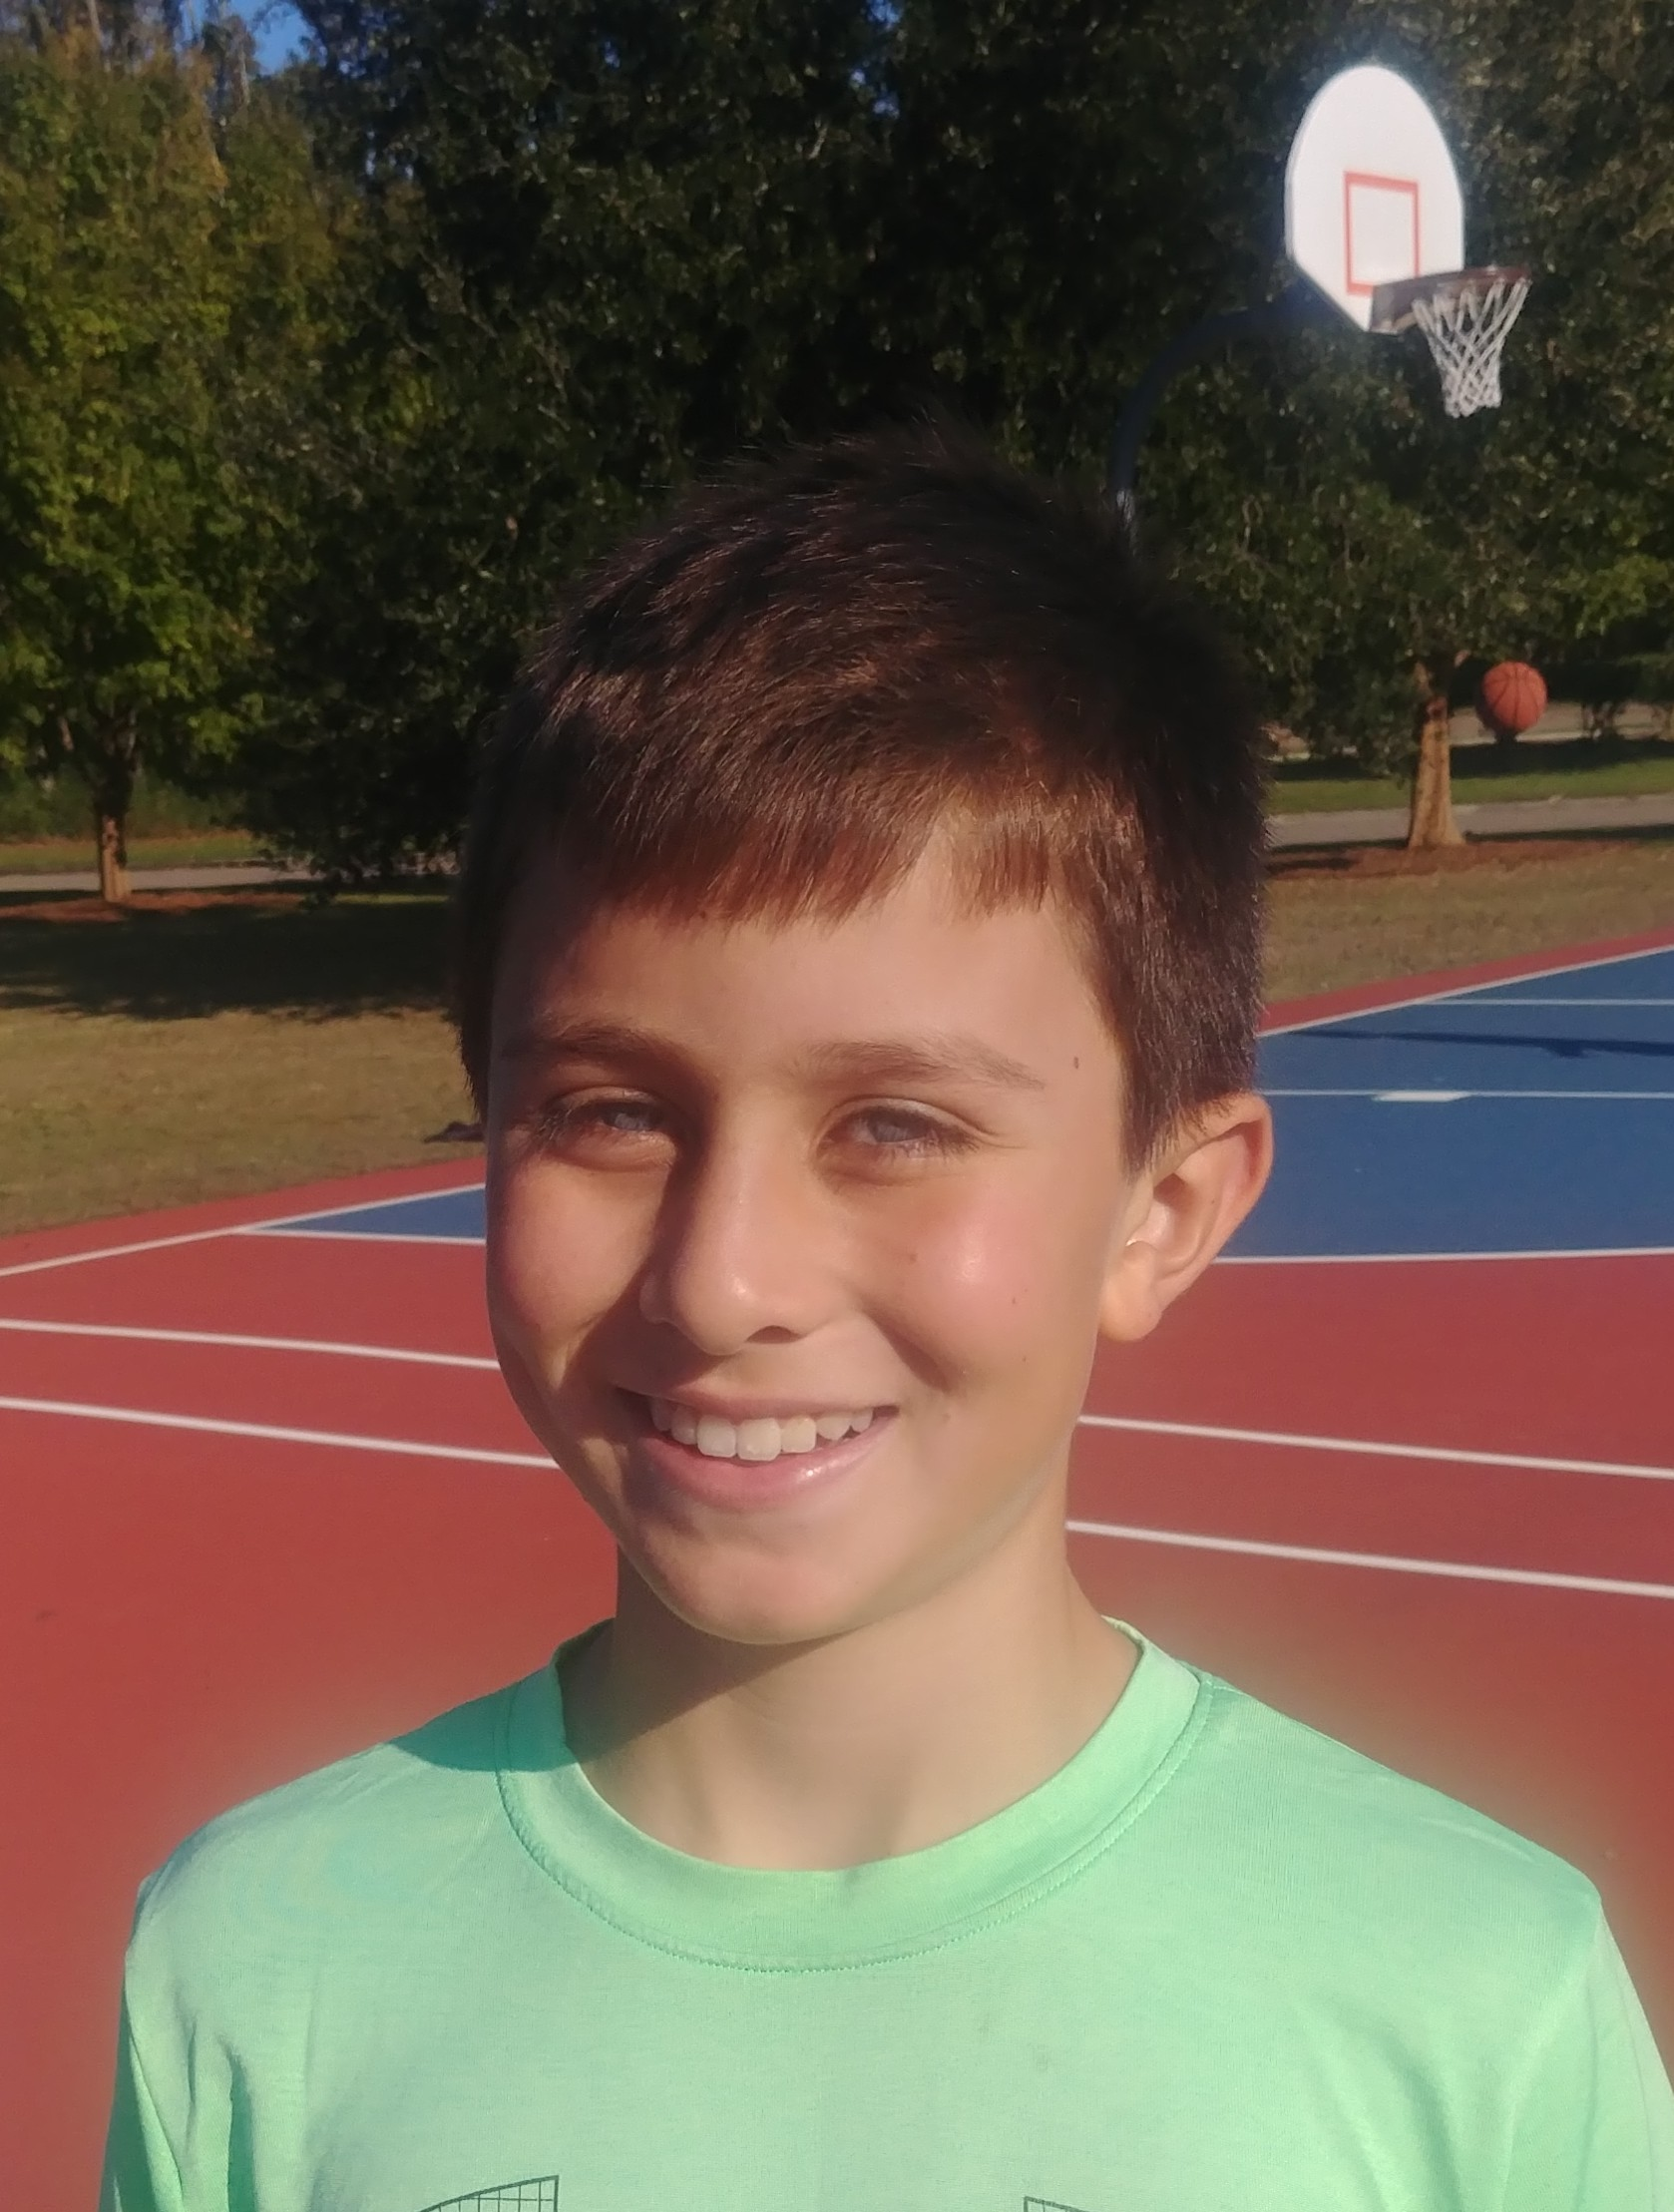 It is going to be called Hoop and Shoot and is going to have basketball jerseys, posters, shoes, and anything related to basketball.   Jackson  Age 10